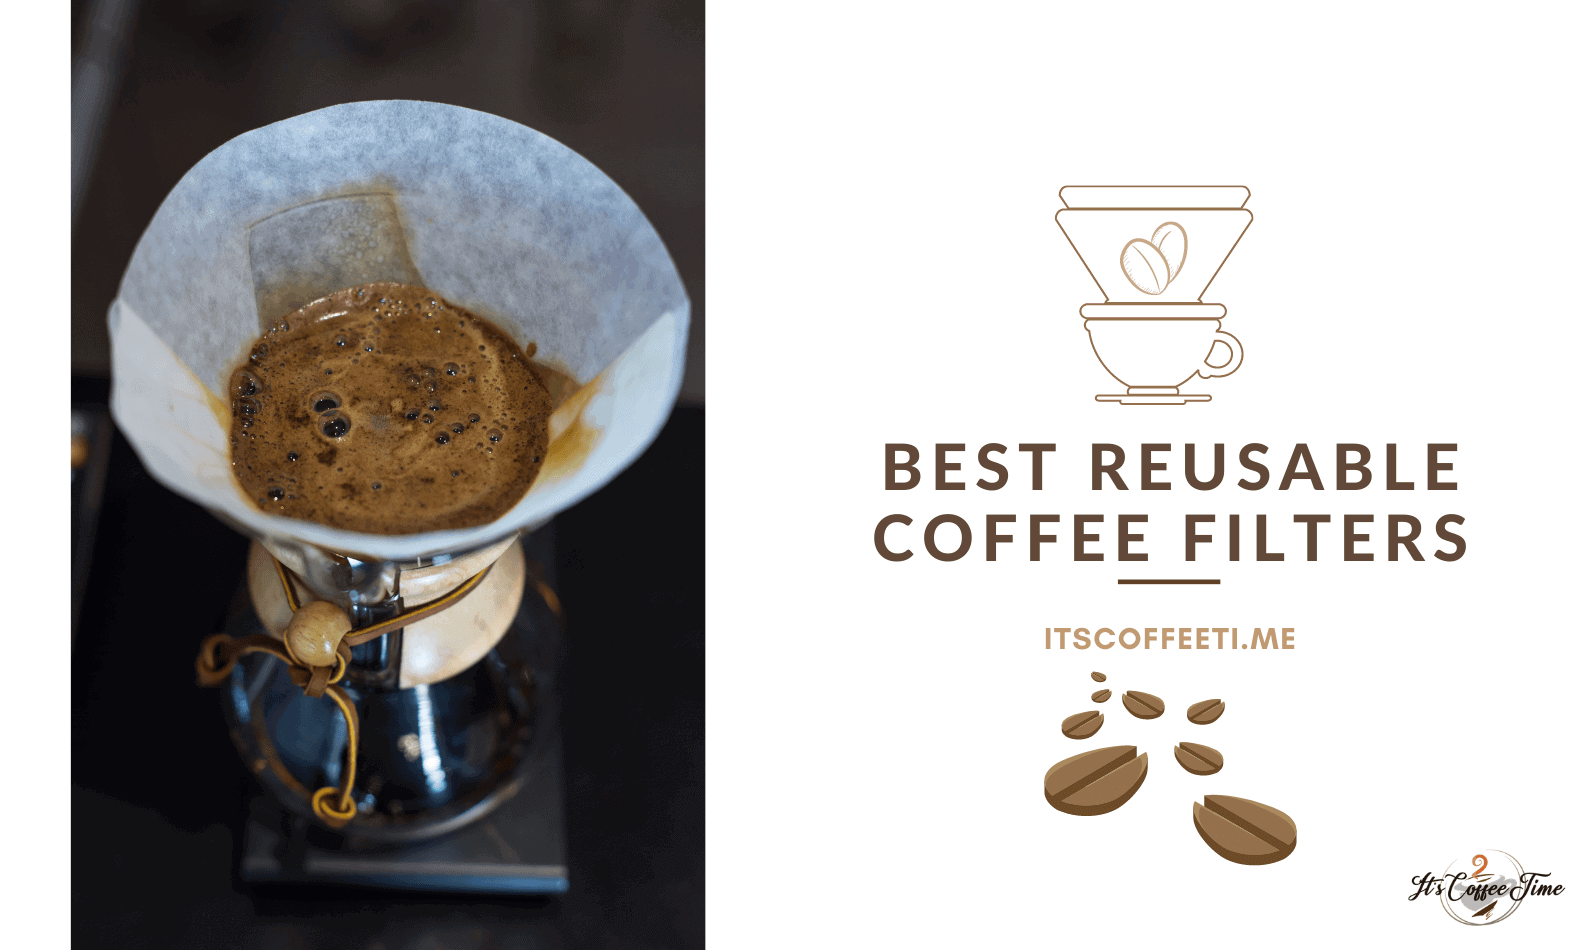 Best Reusable Coffee Filters